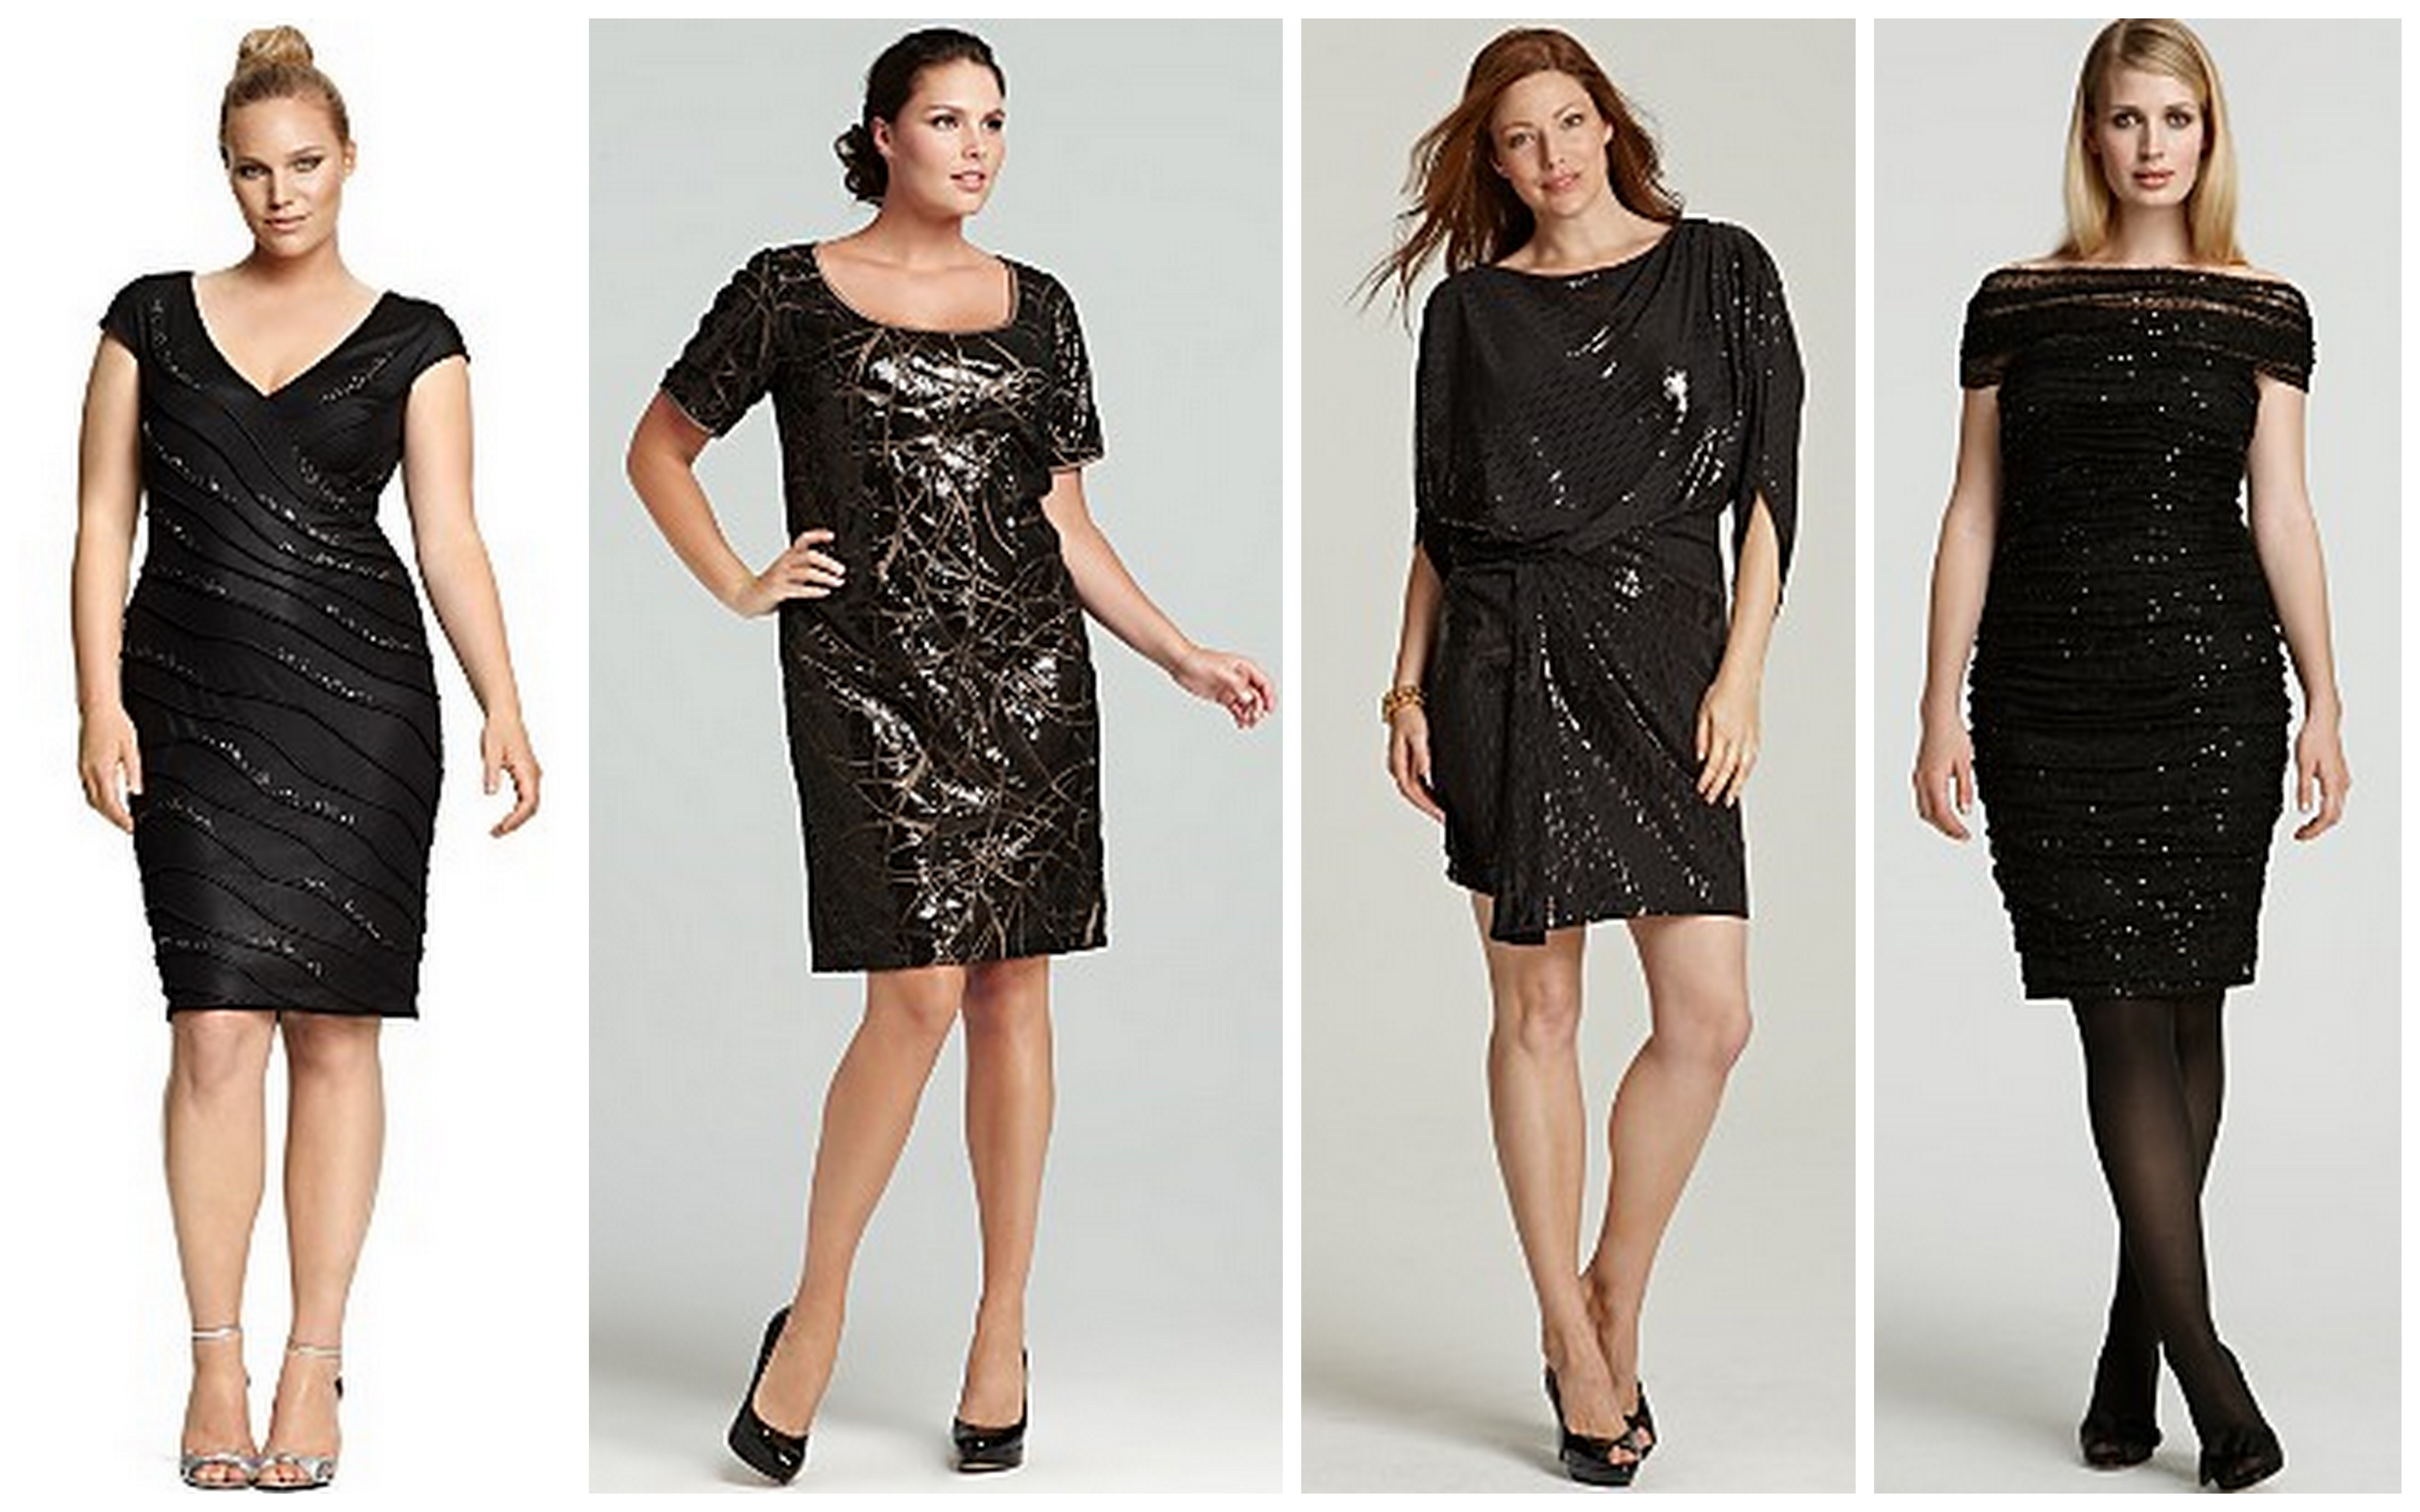 Tolle Party Dresses For Women Plus Size Ideen - Brautkleider Ideen ...